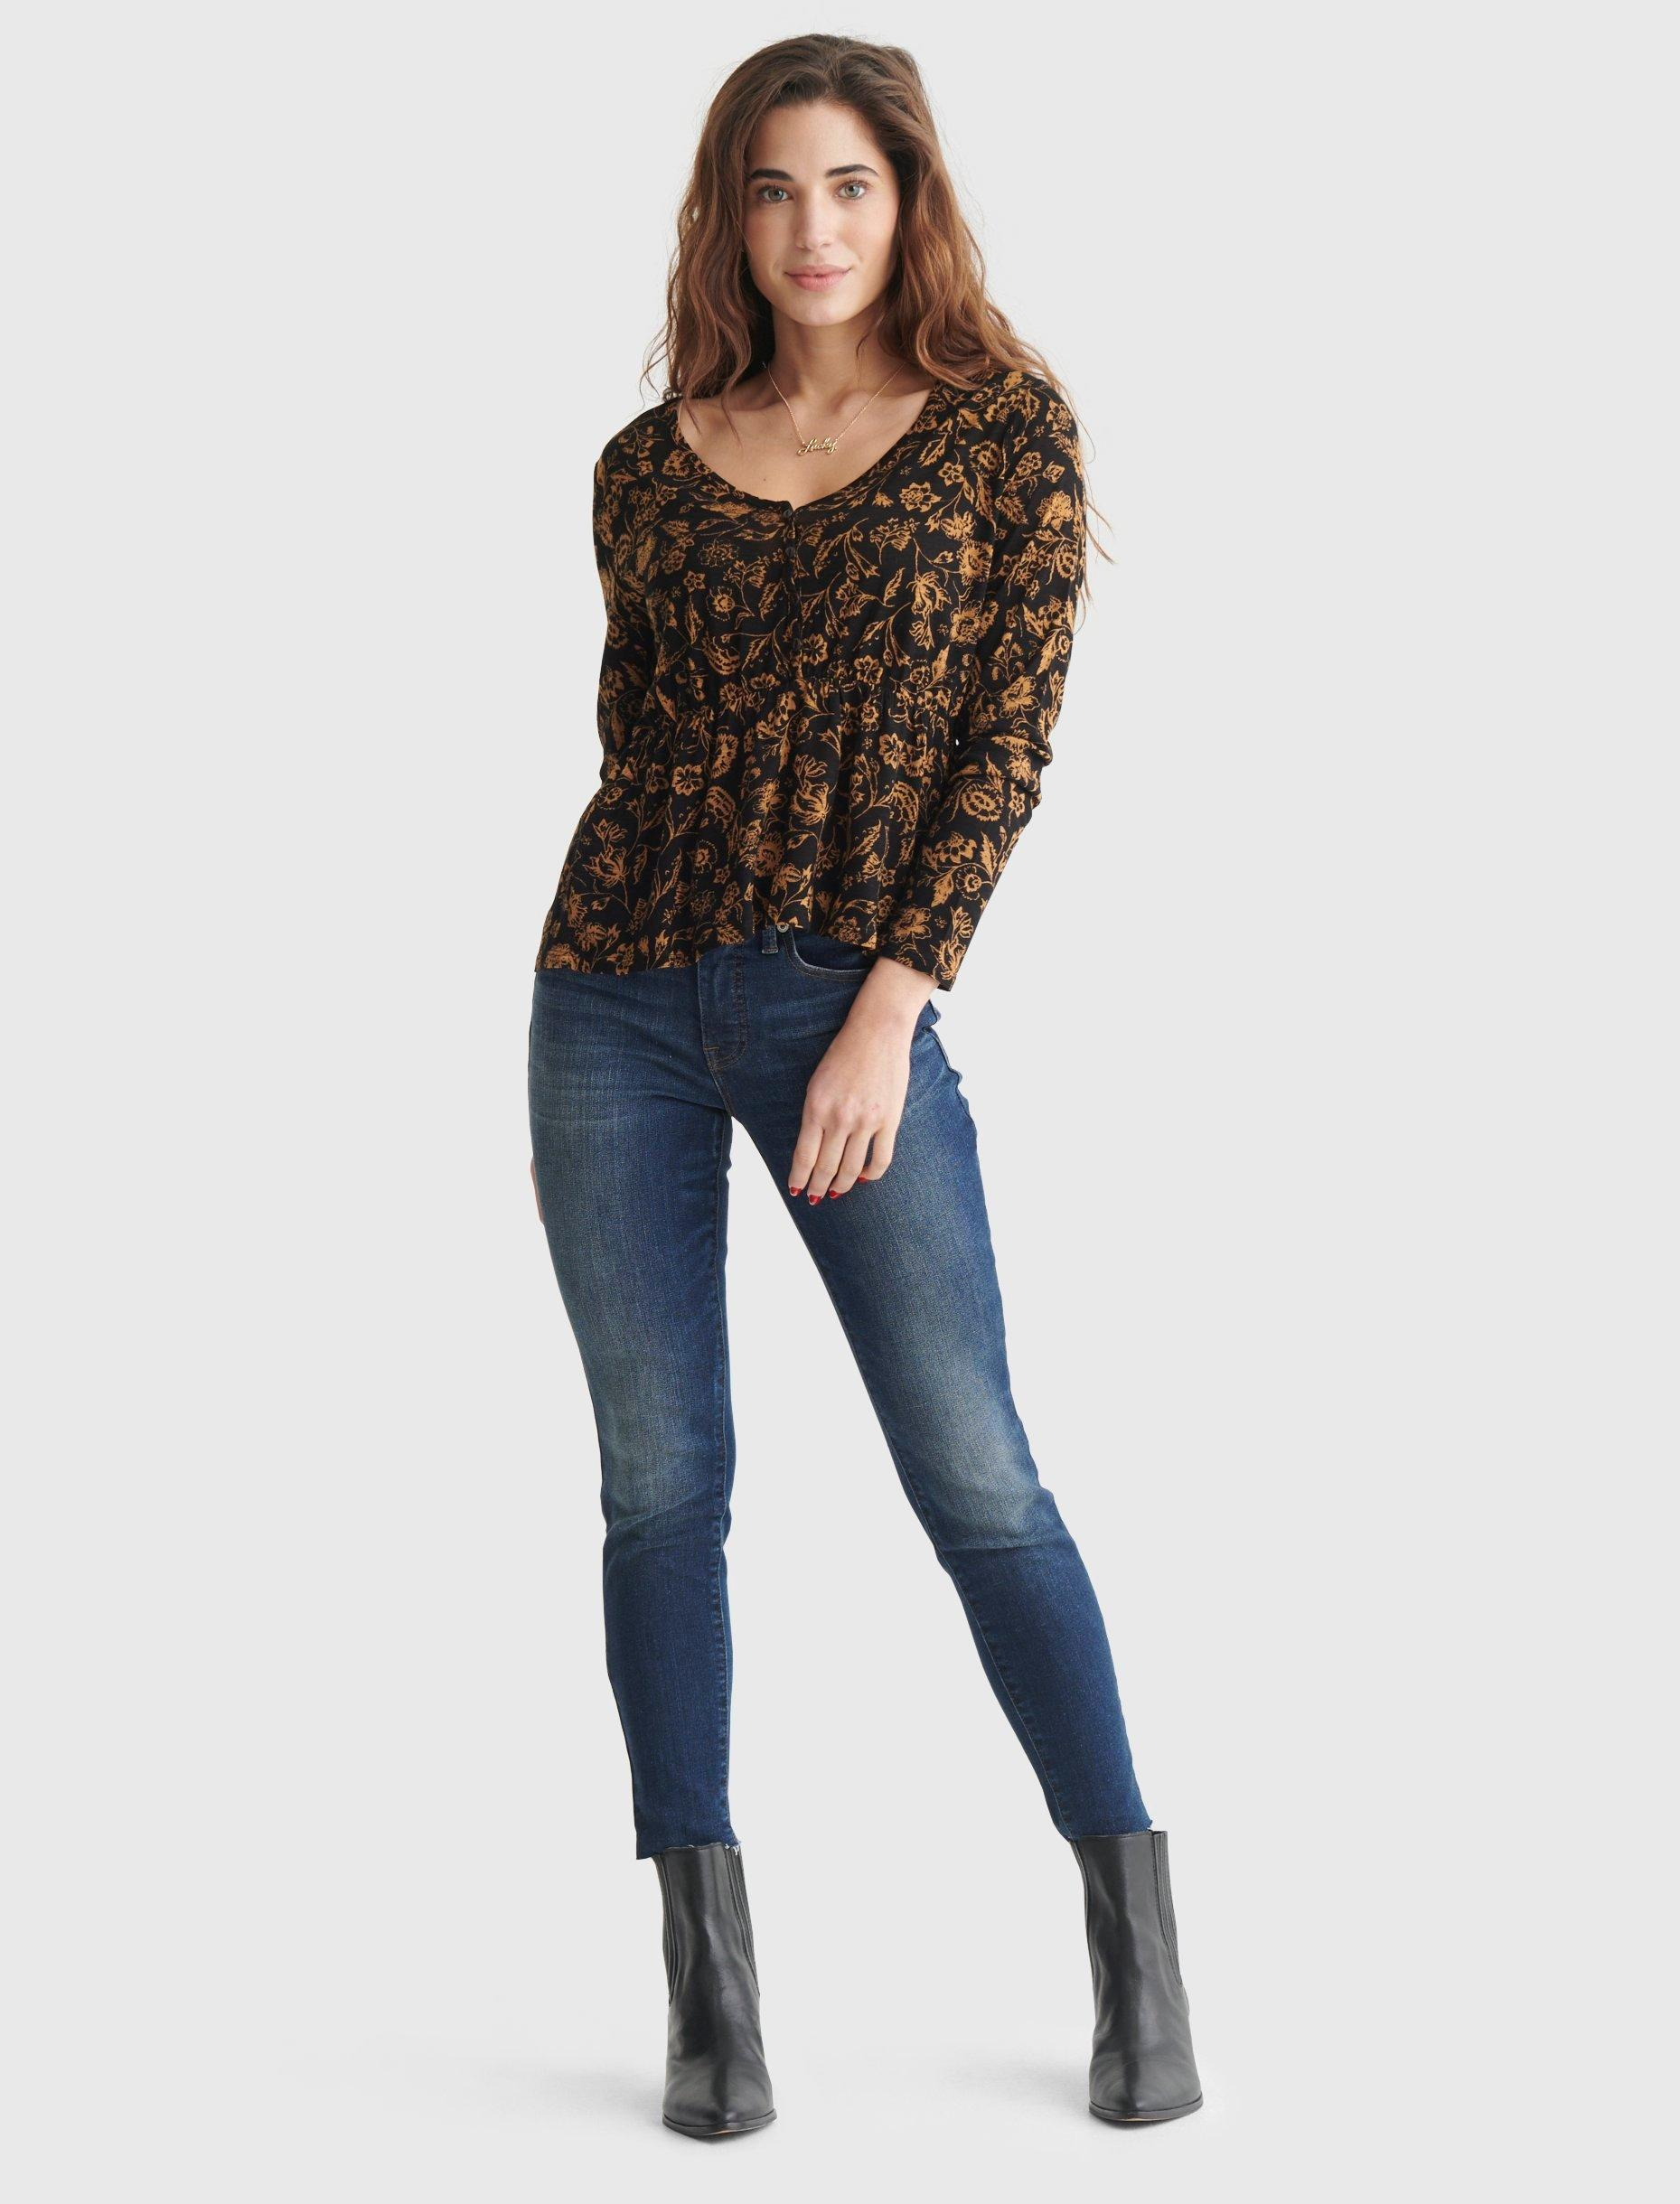 RELAXED-FIT PEPLUM V-NECK TOP, image 2